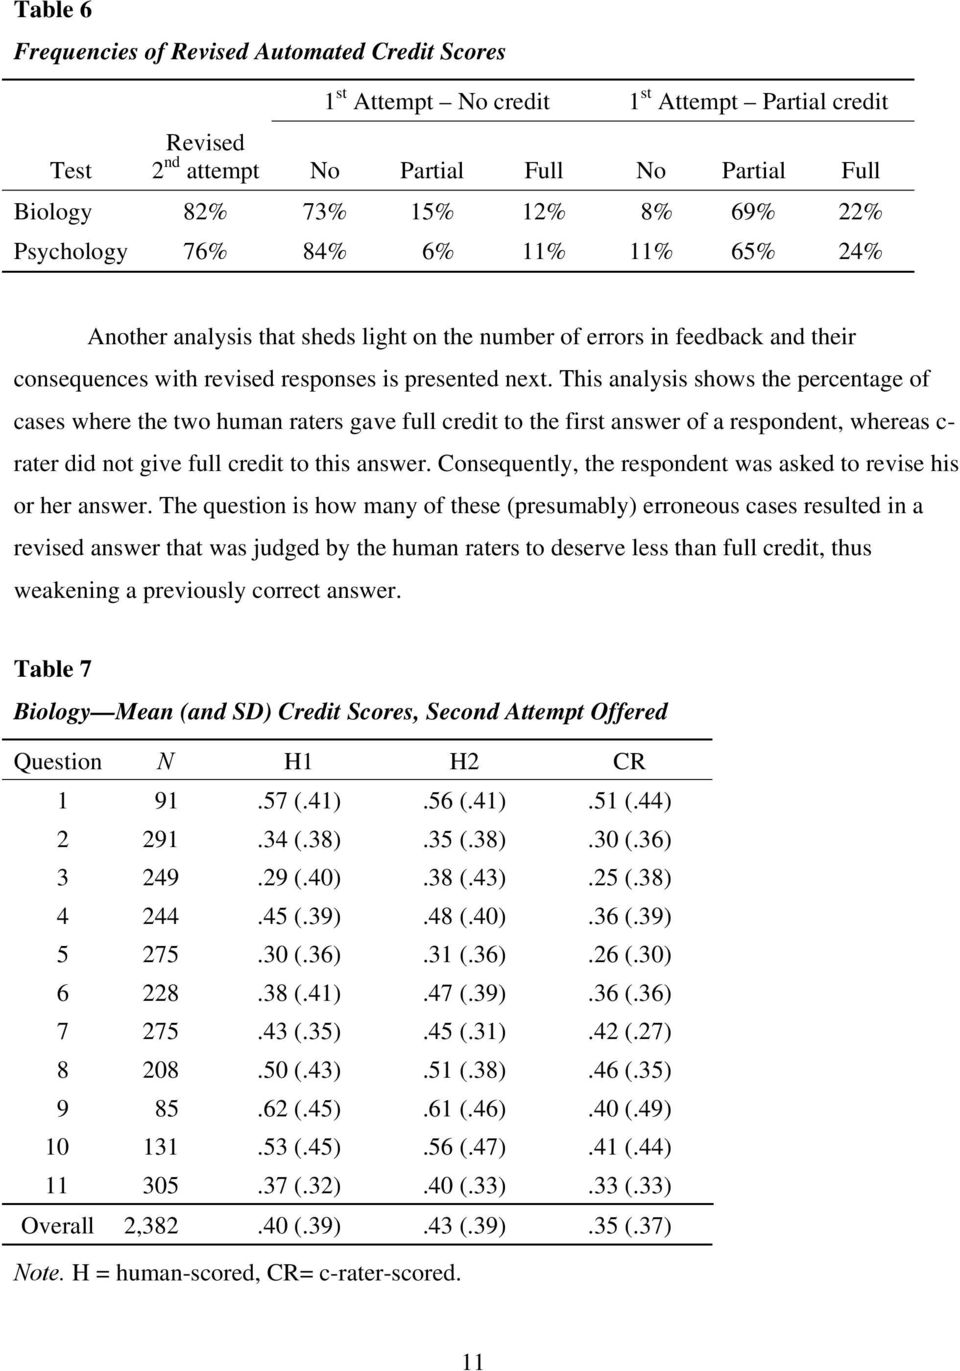 This analysis shows the percentage of cases where the two human raters gave full credit to the first answer of a respondent, whereas c- rater did not give full credit to this answer.